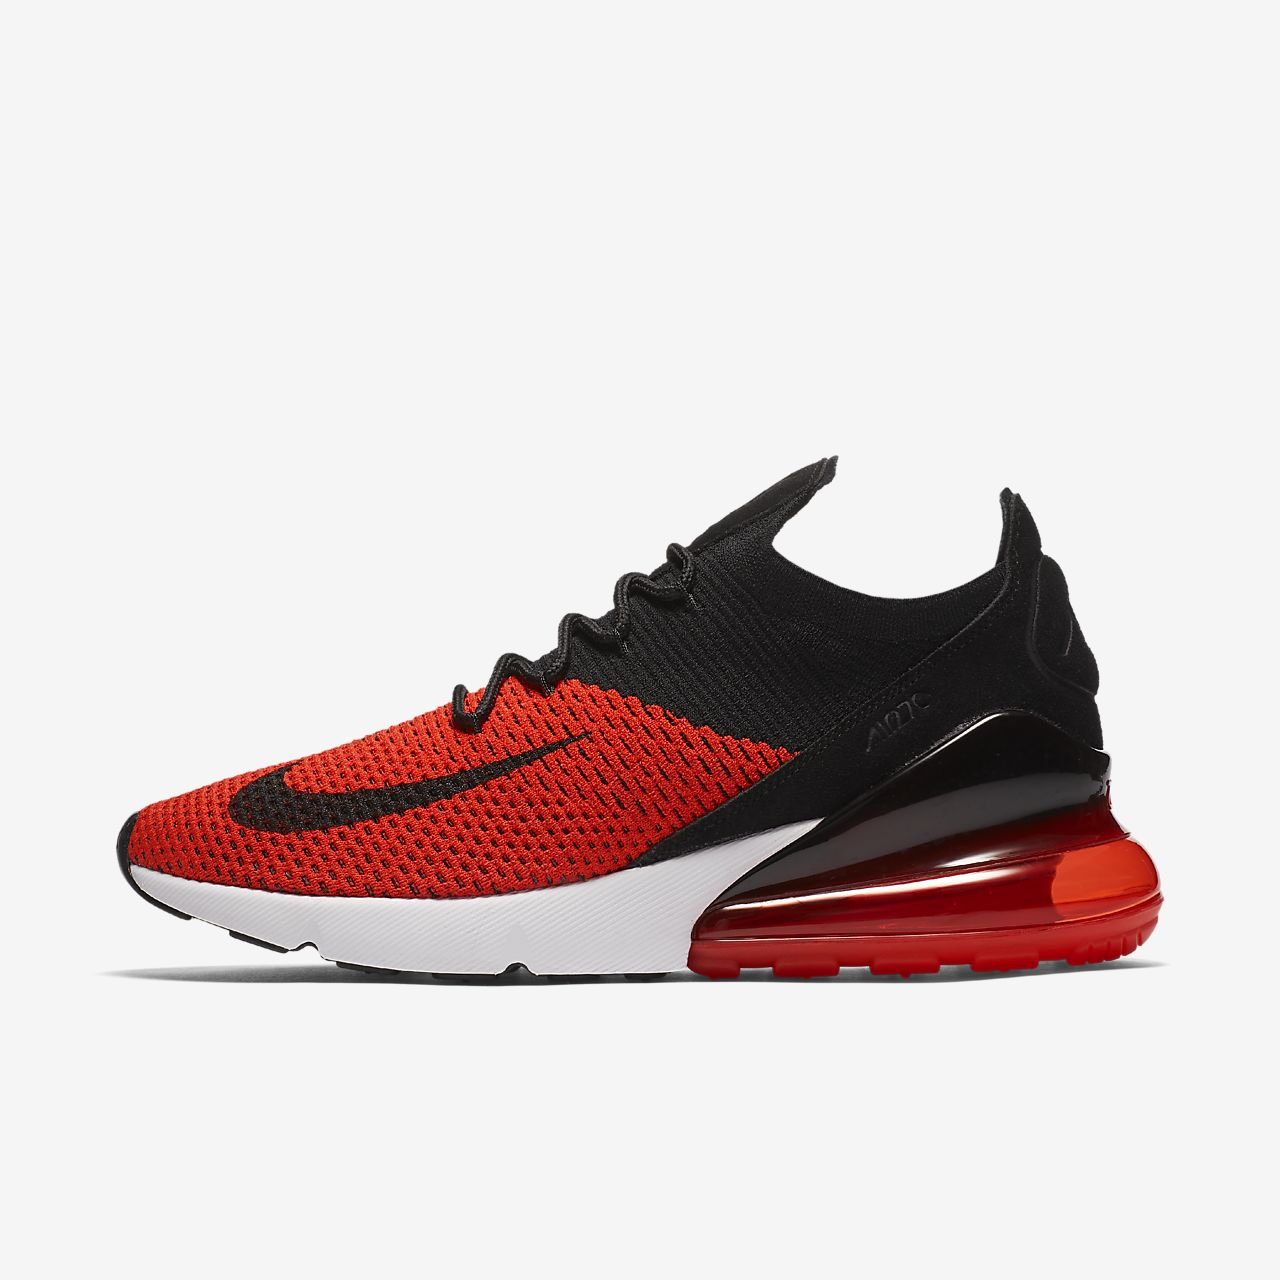 finest selection a74c1 080b6 ... Nike Air Max 270 Flyknit Men s Shoe